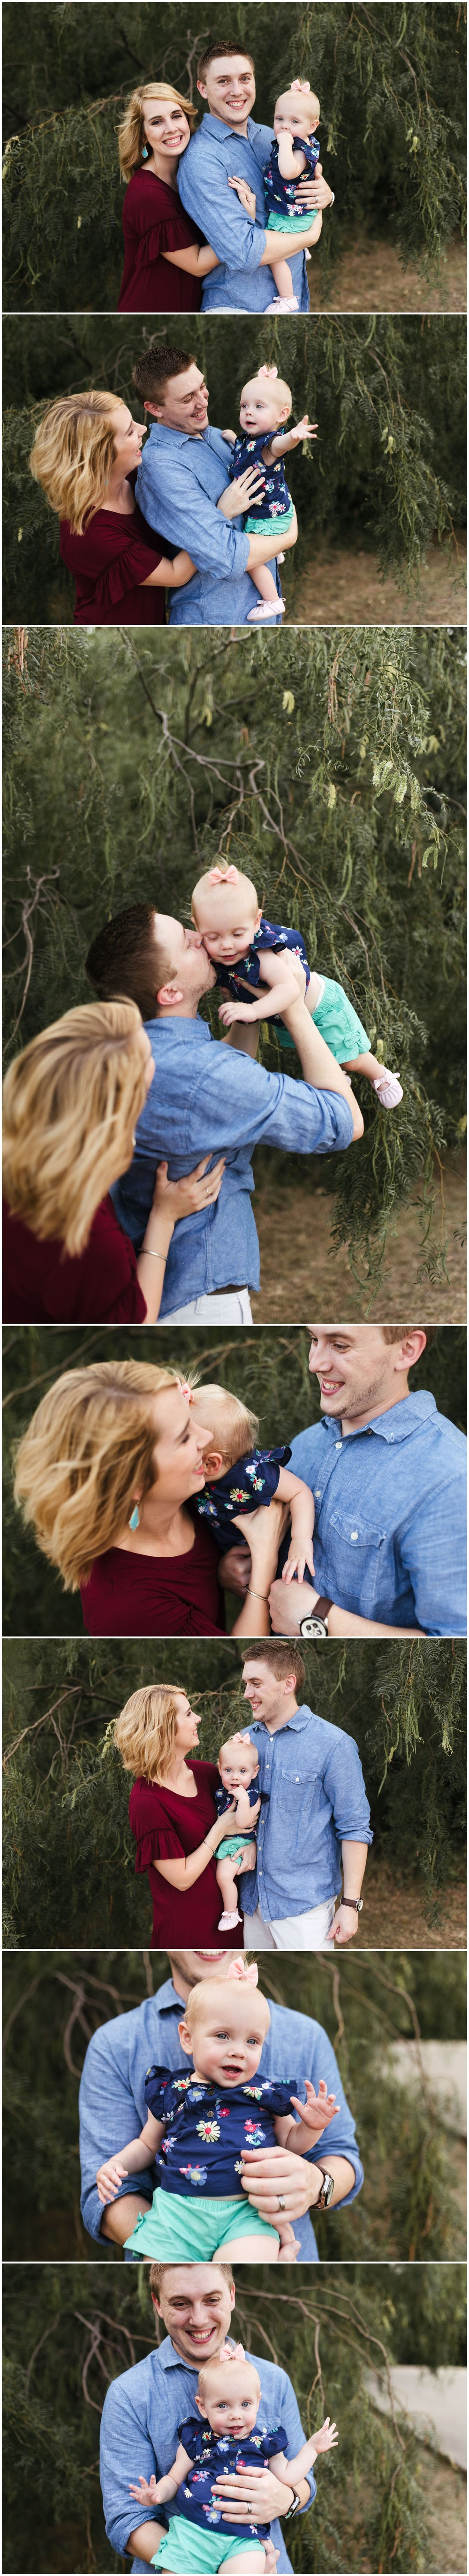 Fort Worth Family Session | Fort Worth family photographer | www.jordanmitchellphotography.com